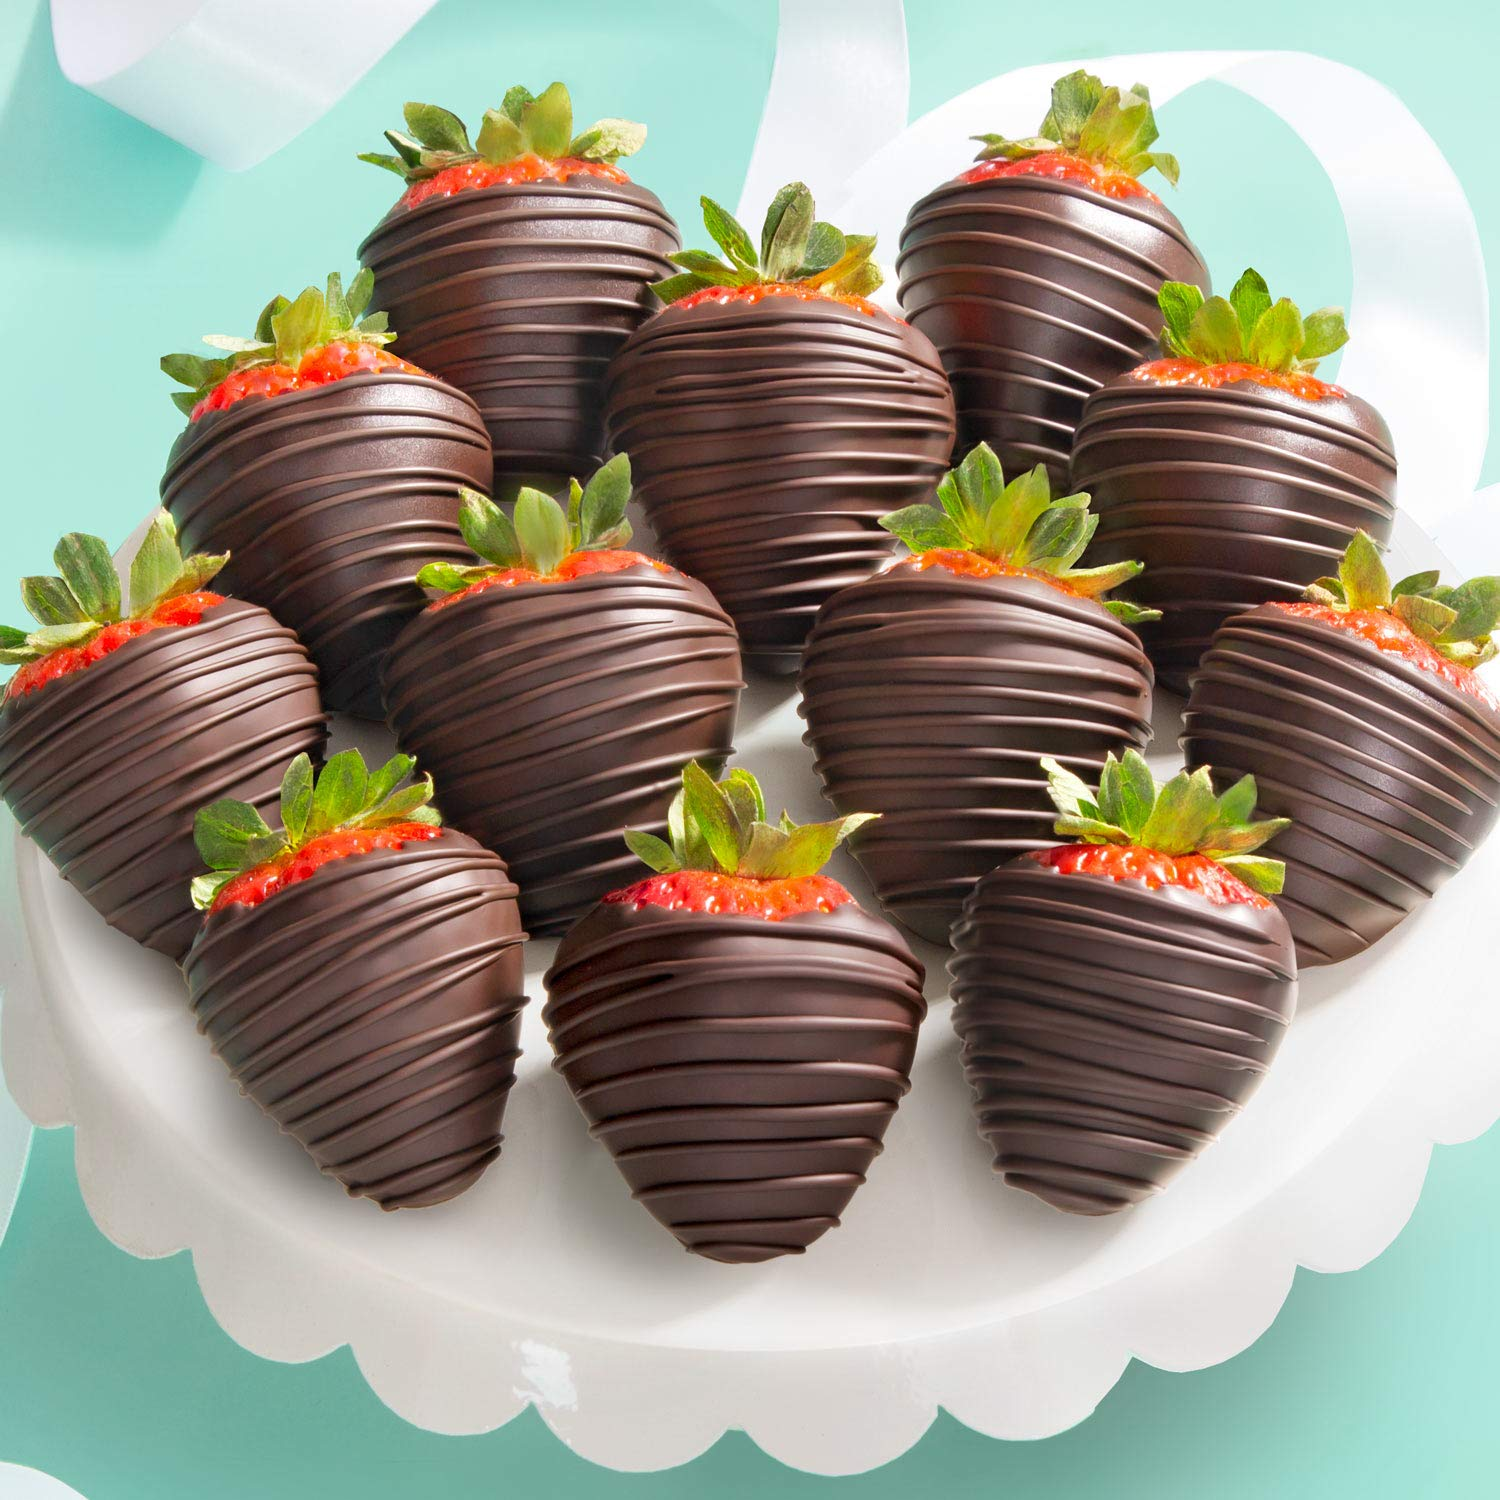 Amazon Com 12 Dreamy Dark Chocolate Covered Strawberries Gourmet Fruit Gifts Grocery Gourmet Food